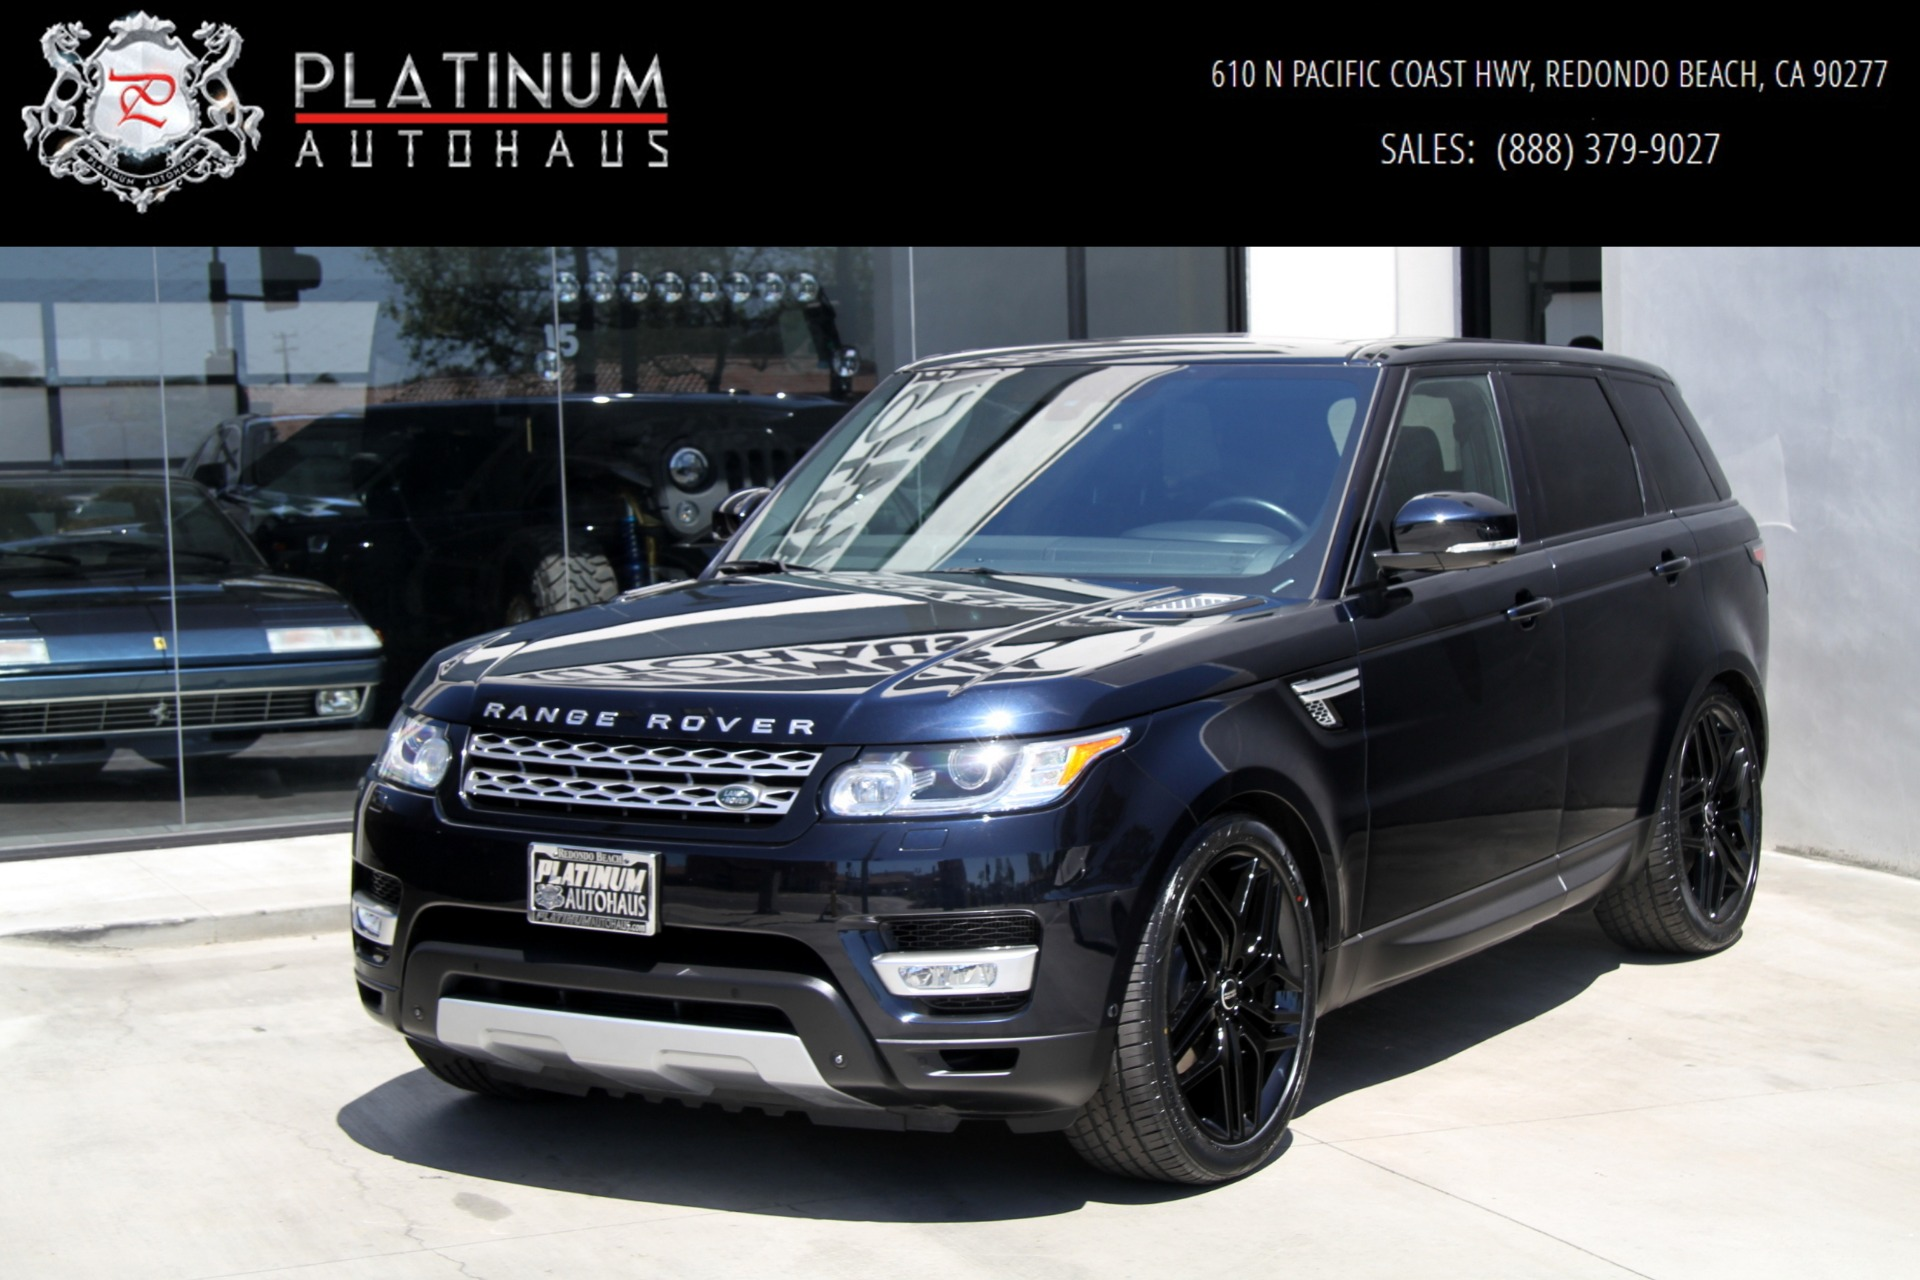 2014 land rover range rover sport supercharged stock 6126 for sale near redondo beach ca ca. Black Bedroom Furniture Sets. Home Design Ideas